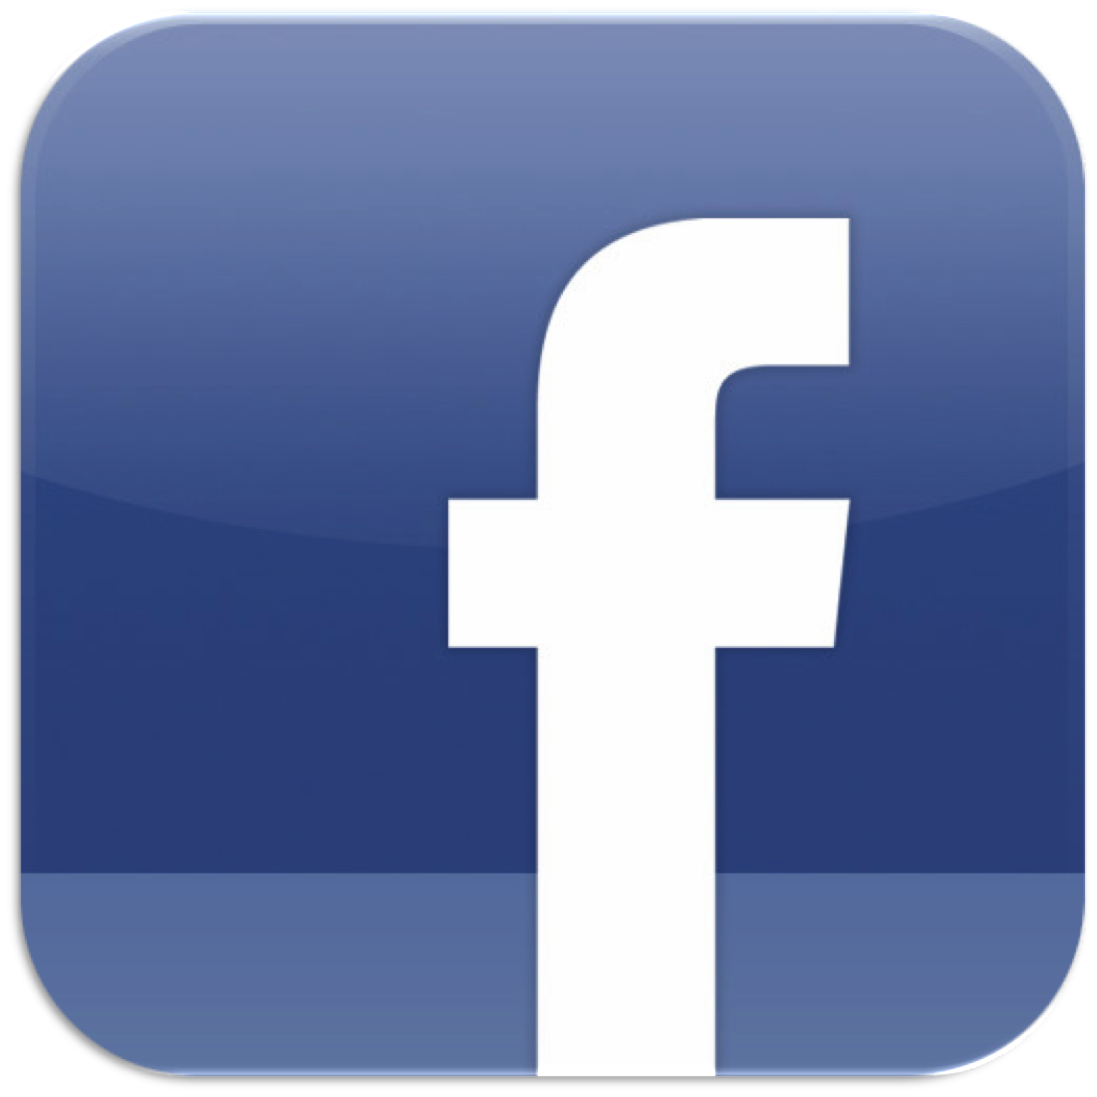 Guideline Logo Facebook Official Facebook Logo Icon